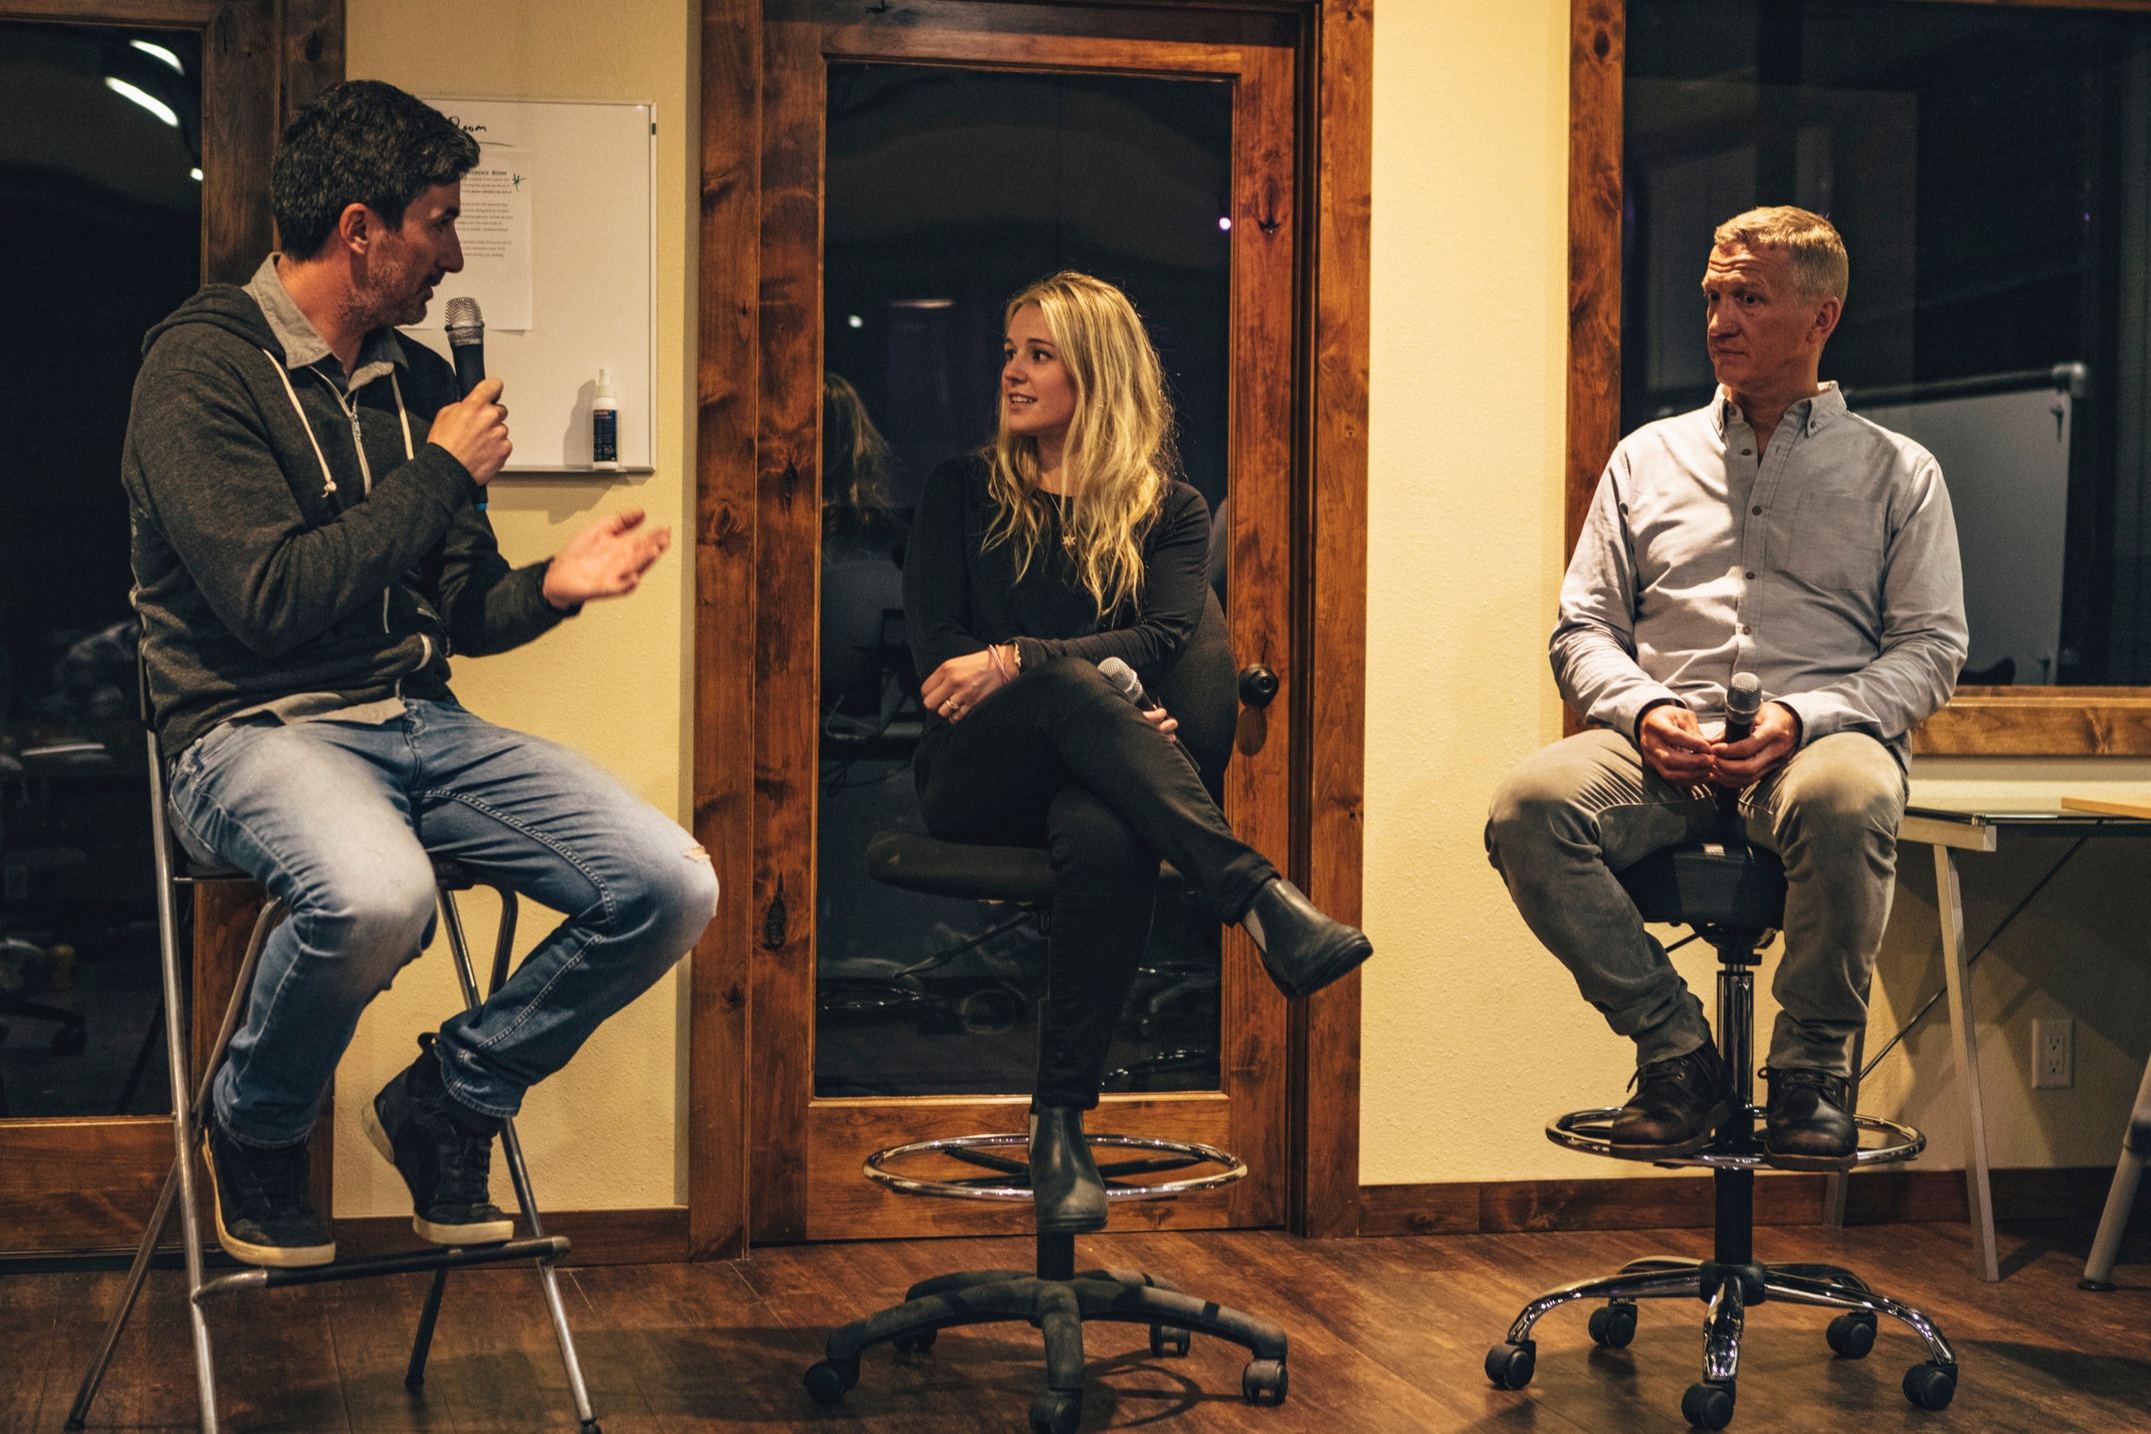 Dirk Collins and Caroline Gleich live in Jackson, WY - Dirk Collins - TGR Cofounder and President/Founder One Eyed BirdCaroline Gleich - Professional ski mountaineer and Founder Big Mountain Dreams Foundation